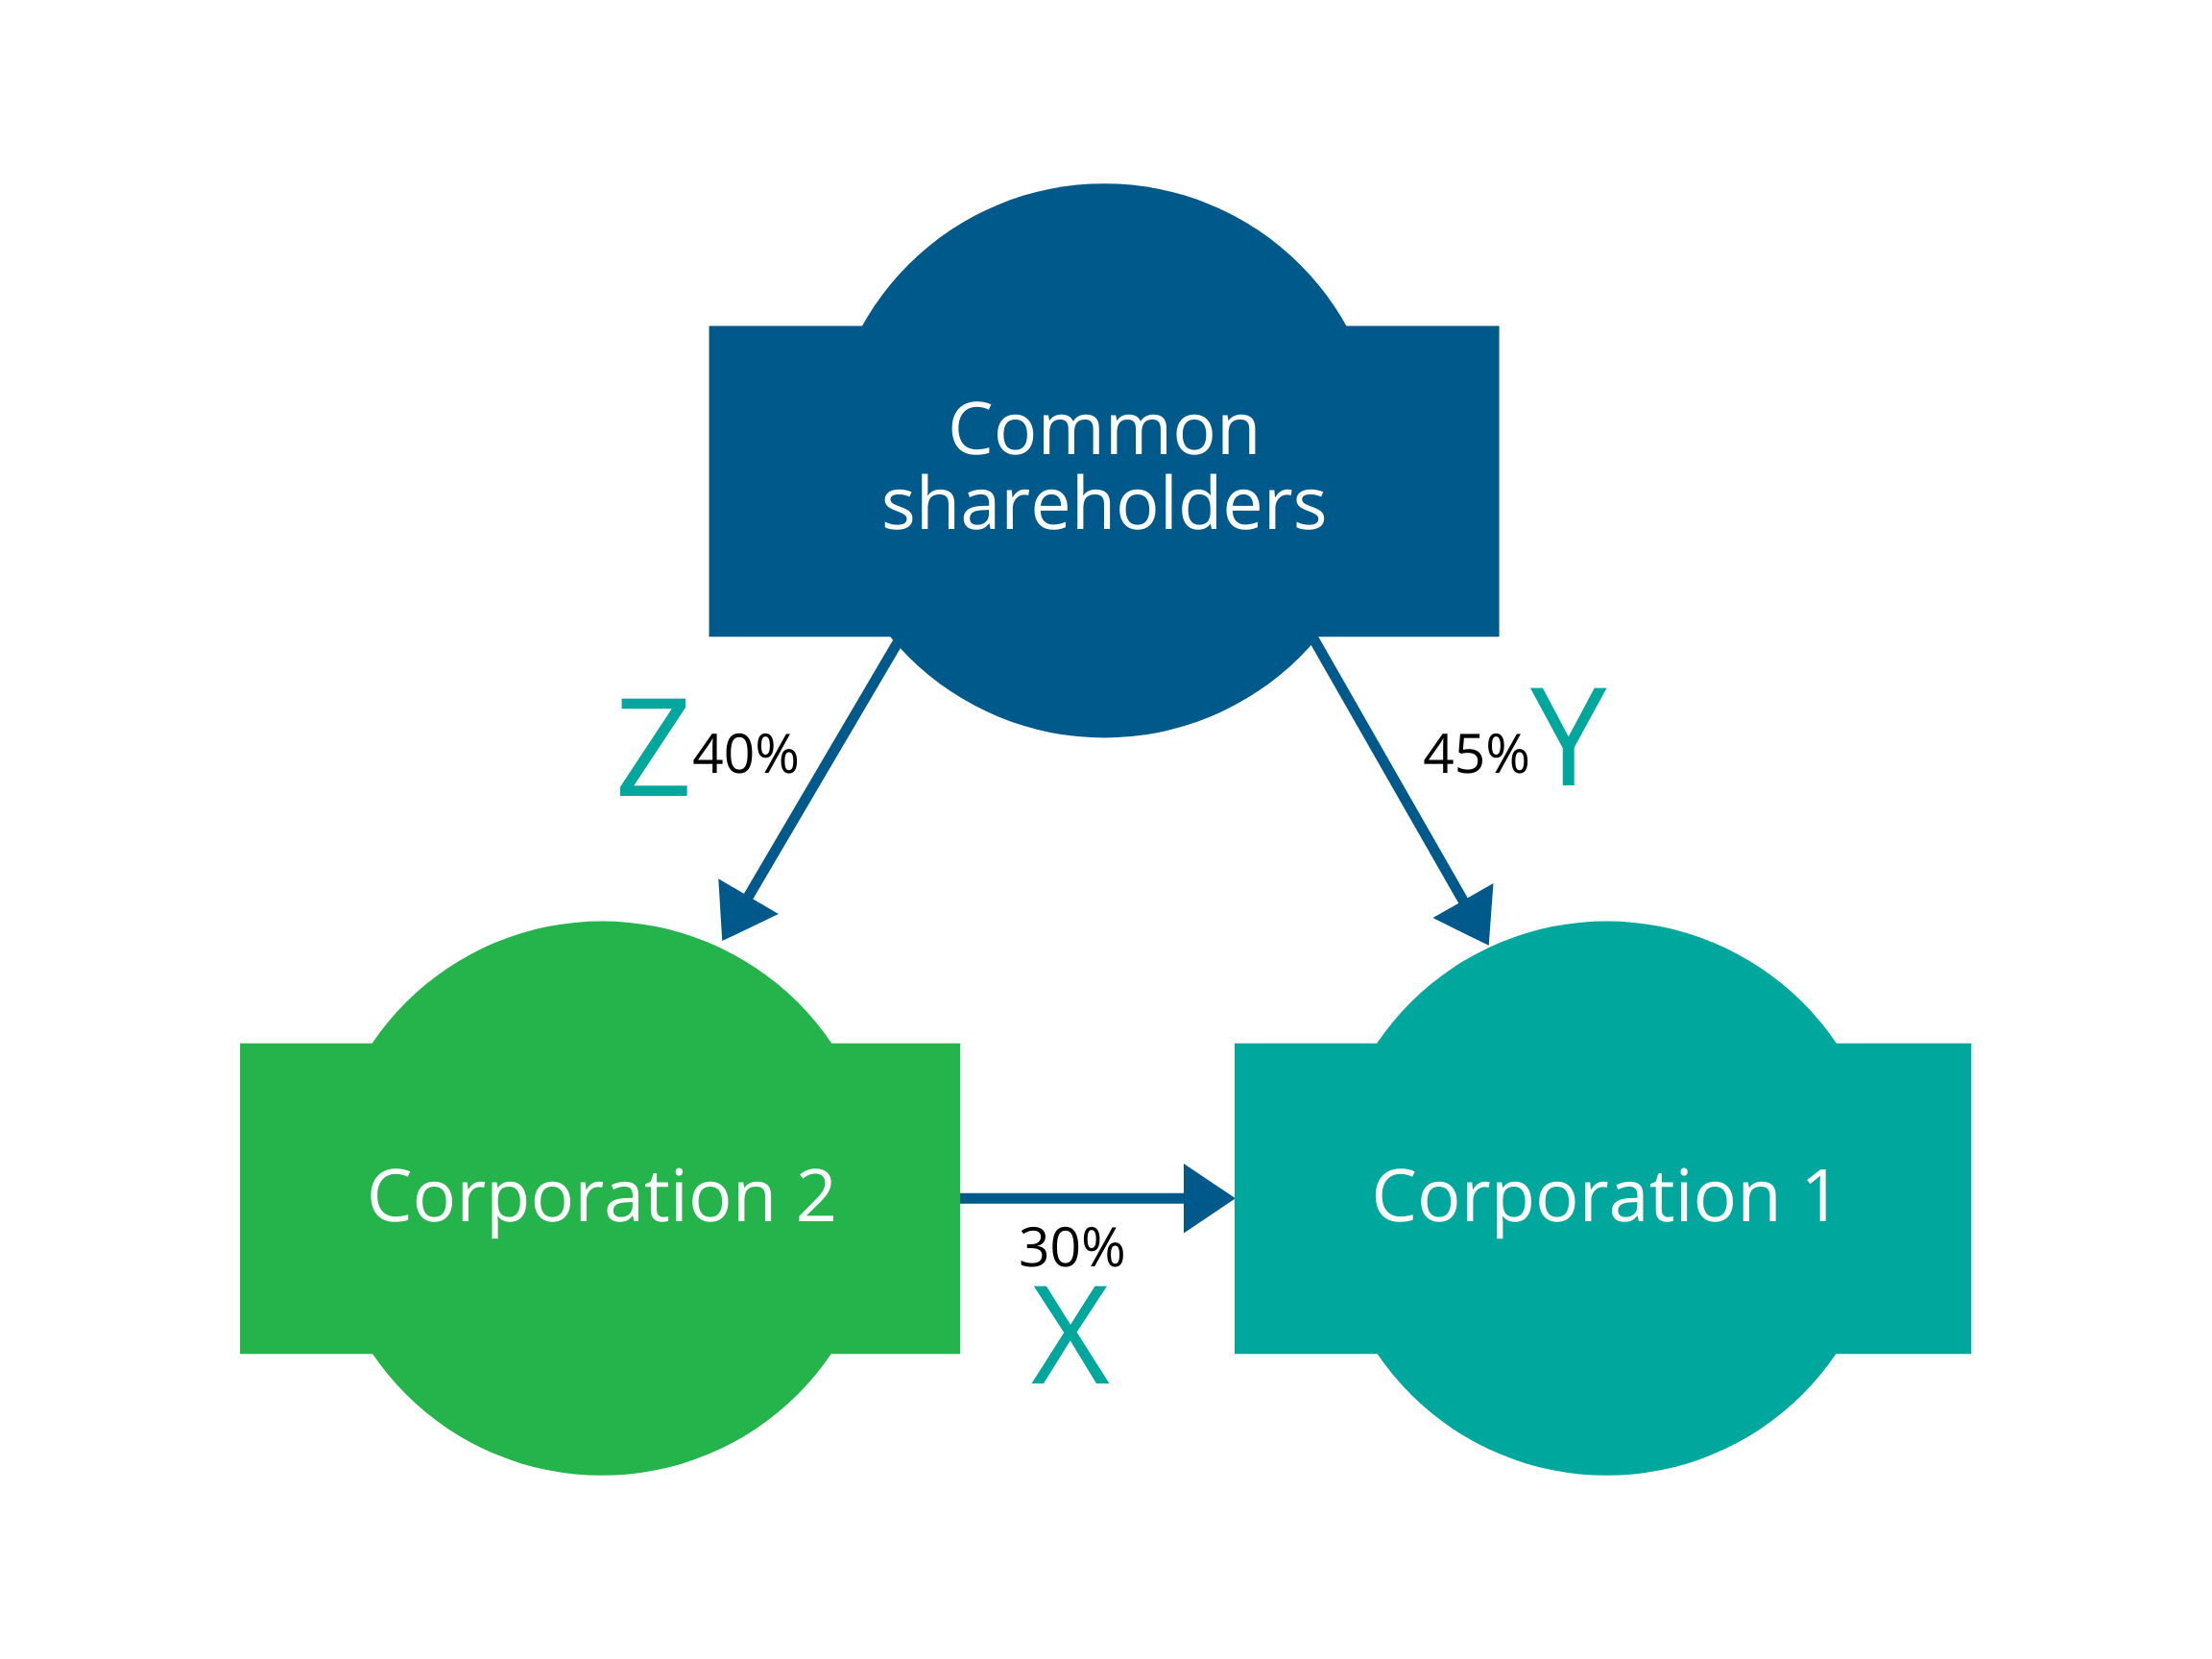 Illustration showing that Corporation 1 and 2 have shareholders in common and corporation 2 has shares in corporation 1